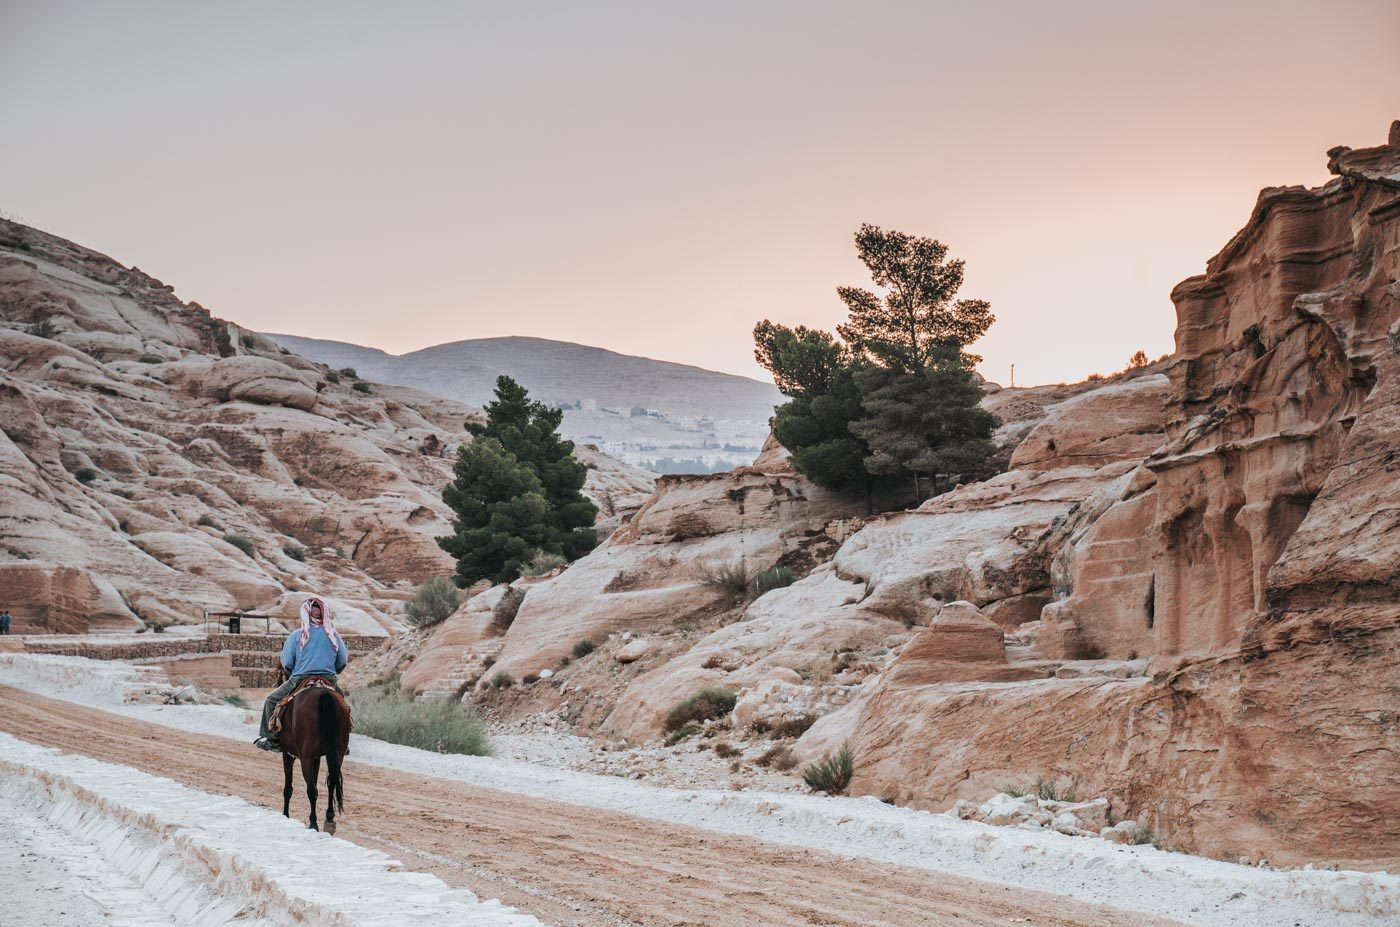 Things to see in Jordan: Bedouin riding a horse in Petra, Jordan